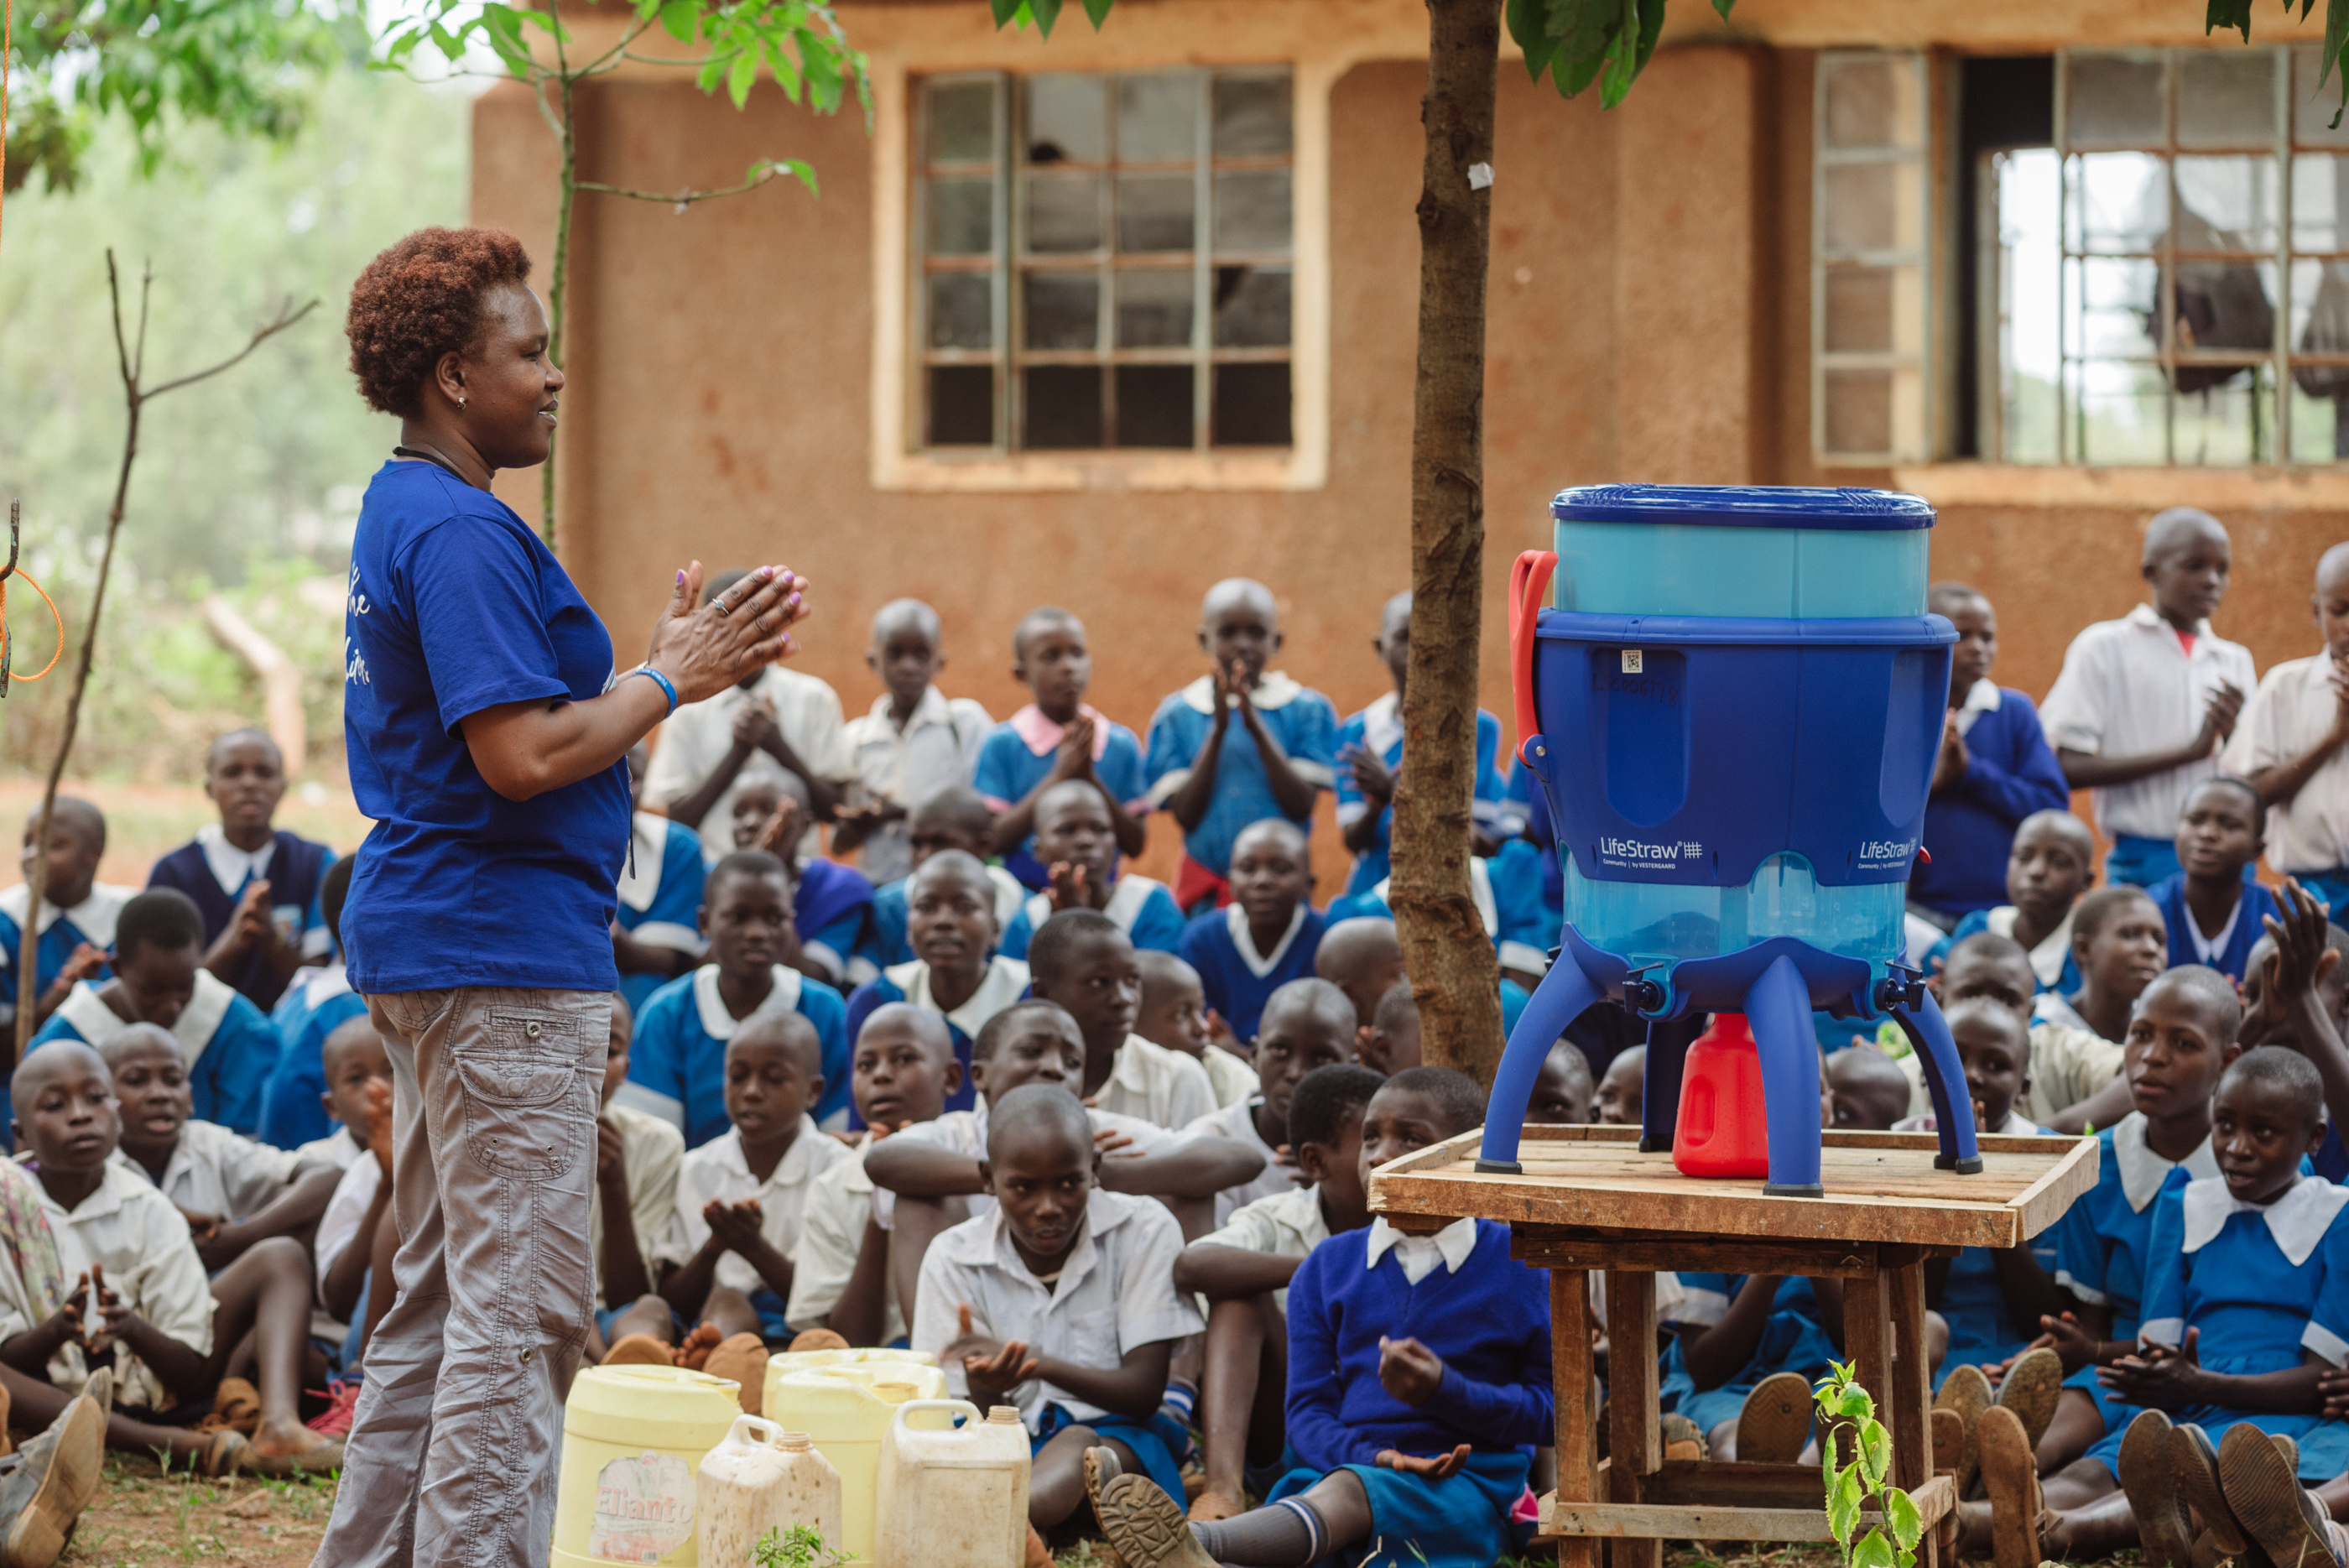 Bringing Safe Drinking Water to Vulnerable Populations